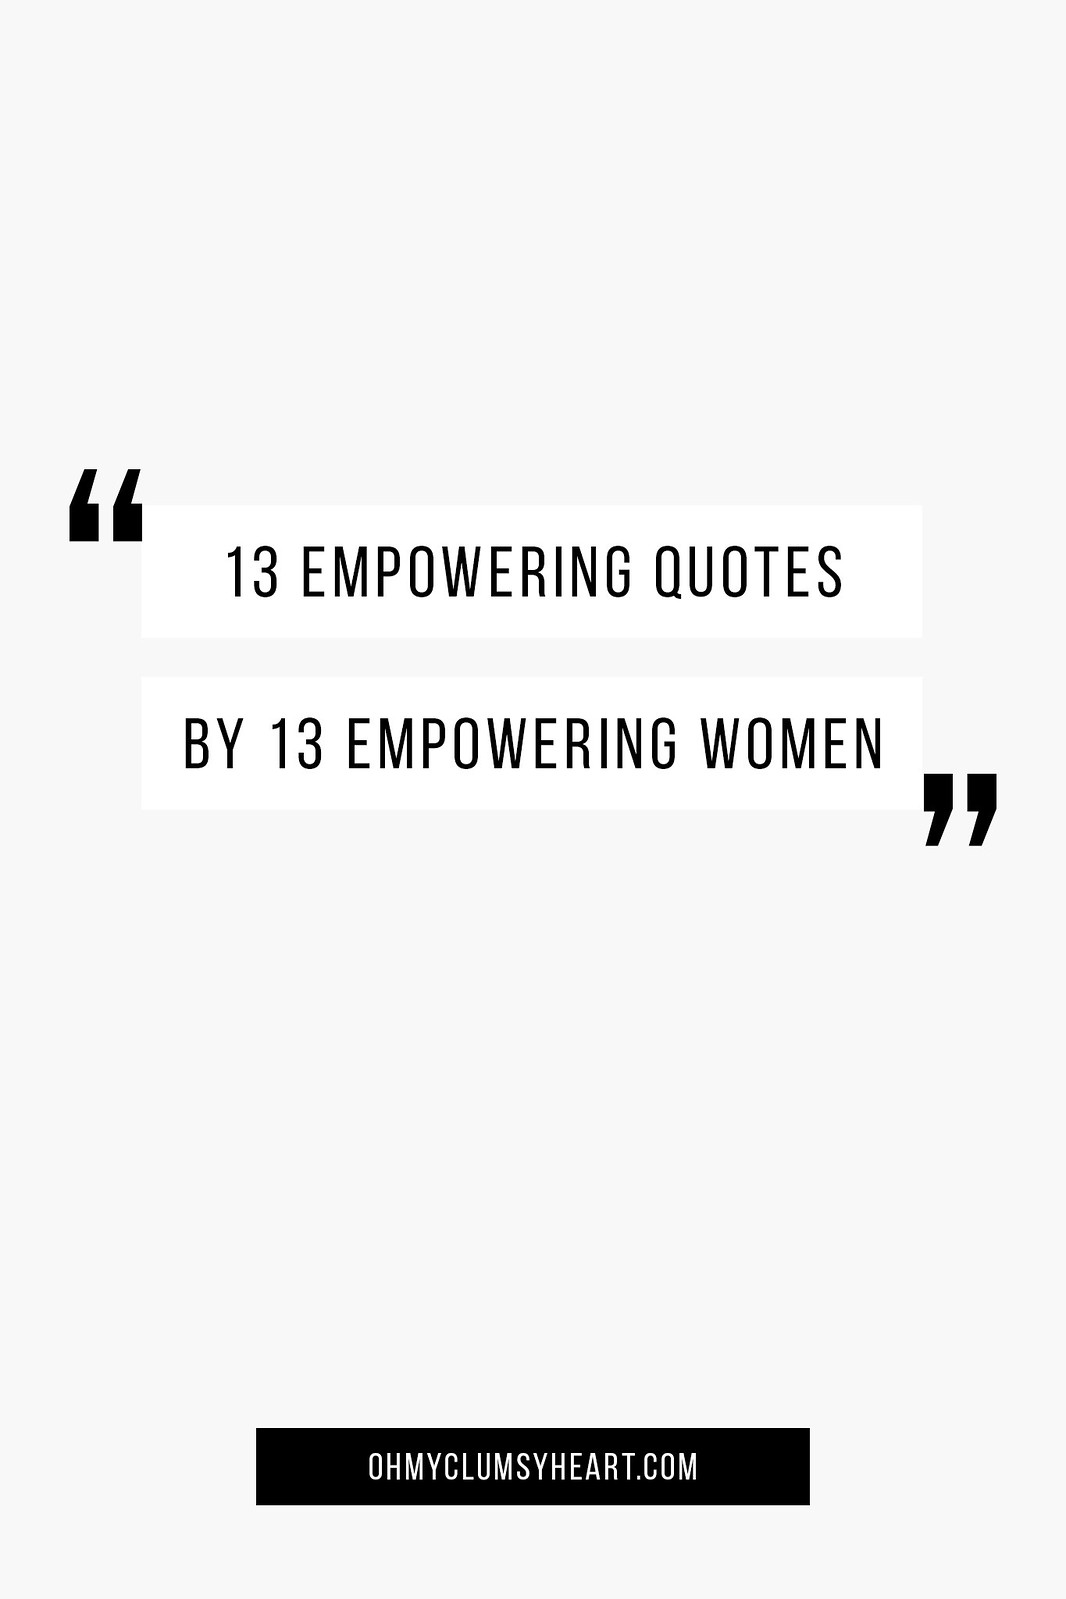 Quotes Women 13 Empowering Quotes13 Empowering Women  Oh My Clumsy Heart